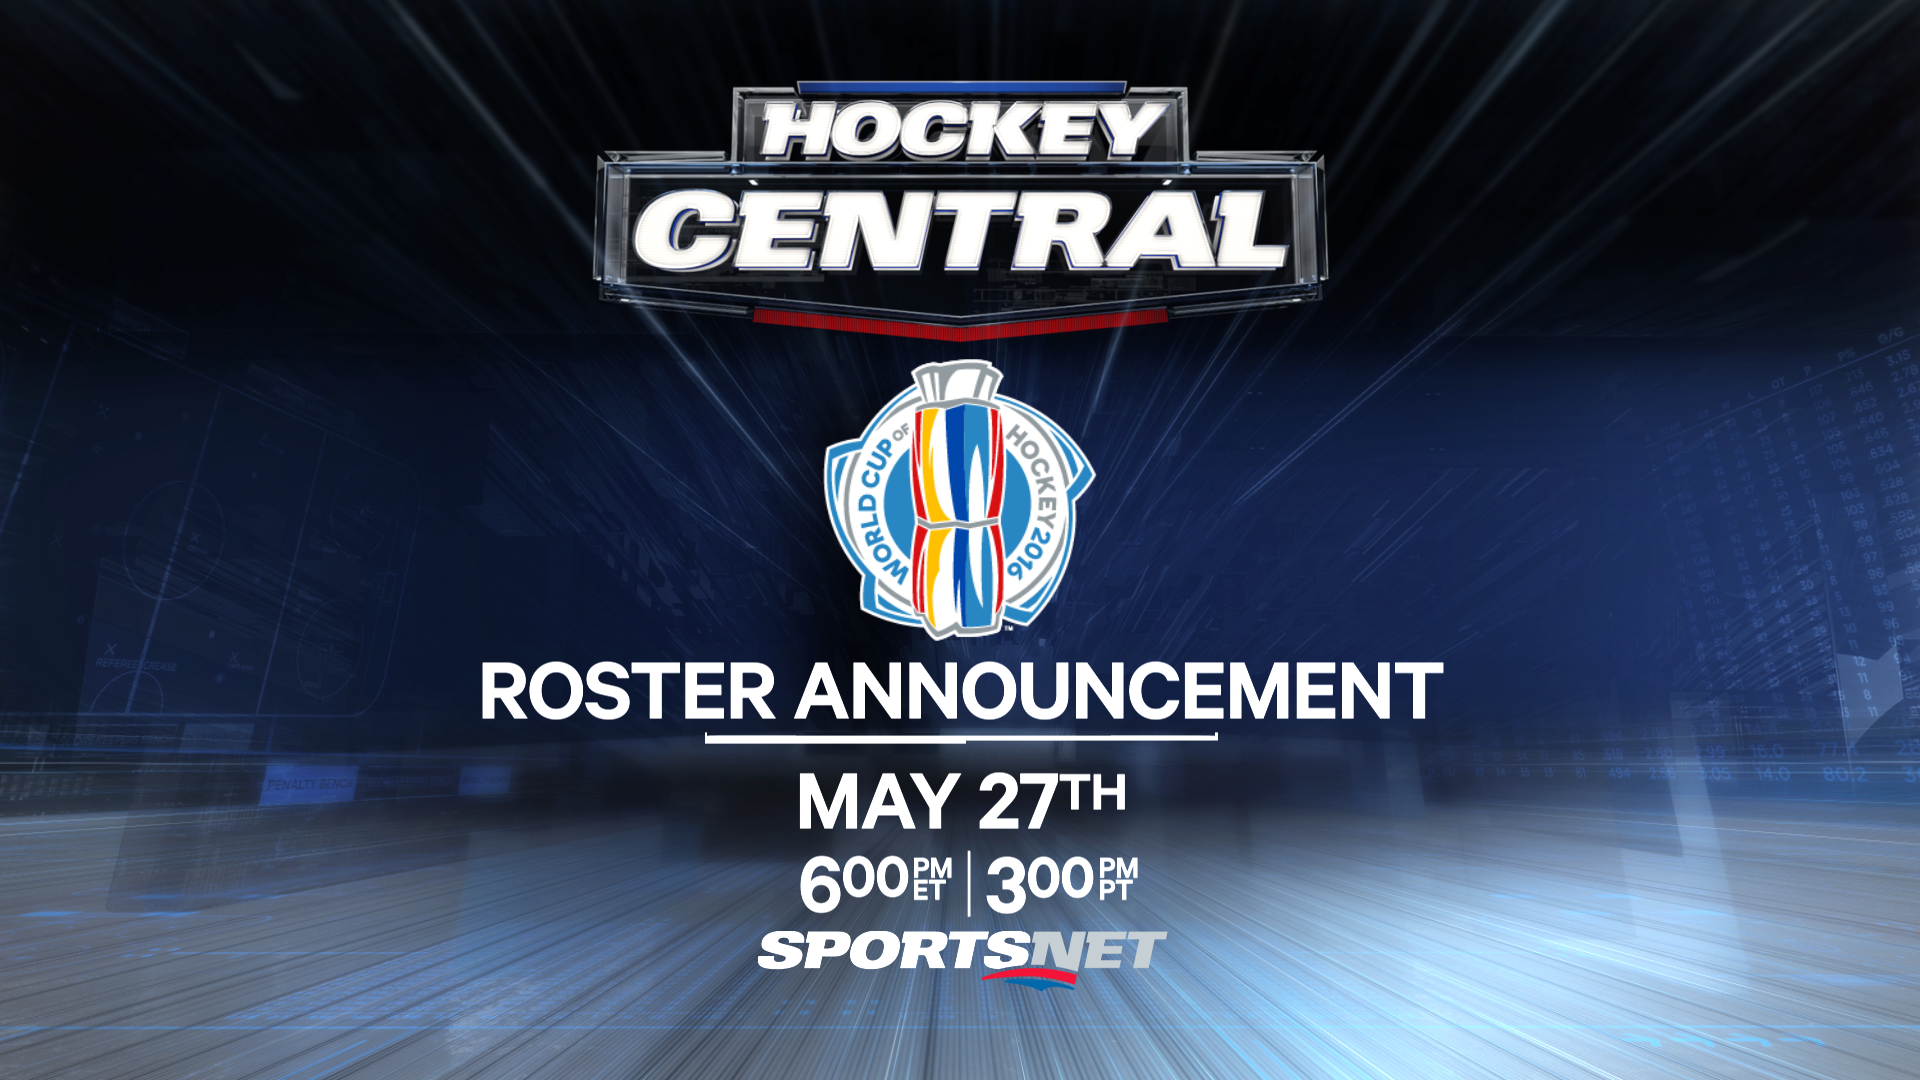 Hockey Central World Cup of hockey roster announcement.